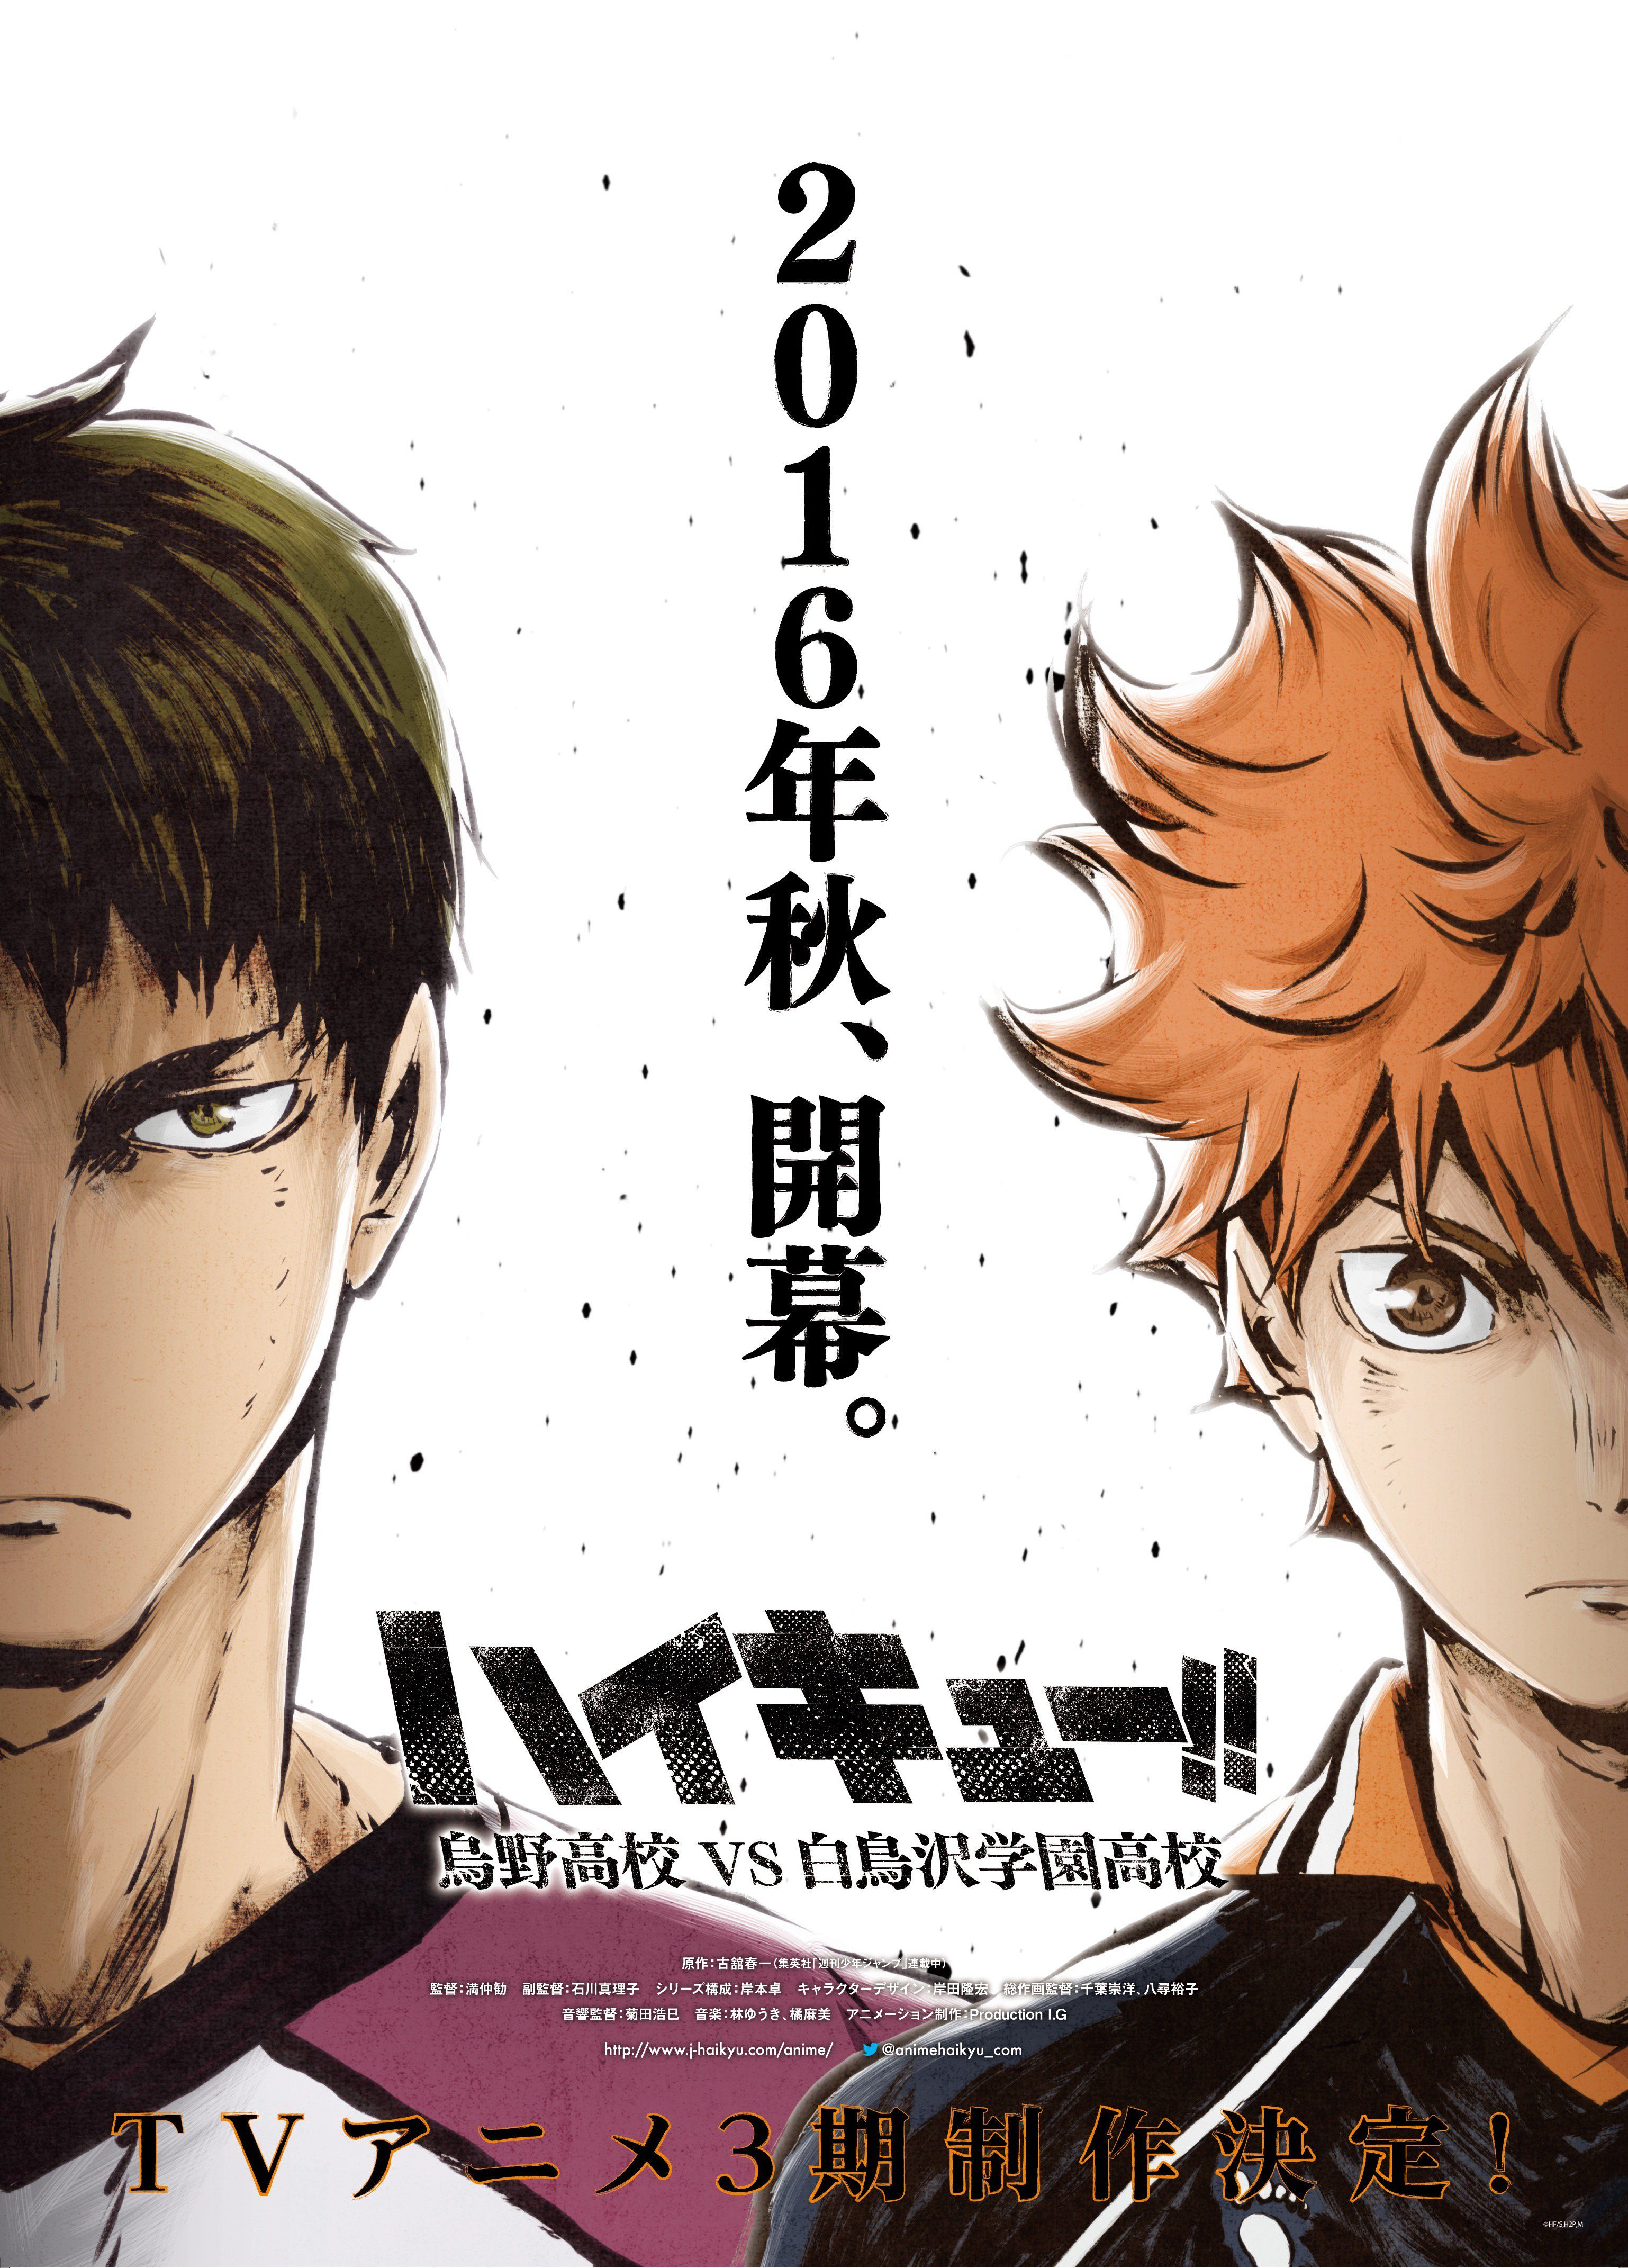 Haikyuu!! Season 3 Karasano VS Shiratorizawa